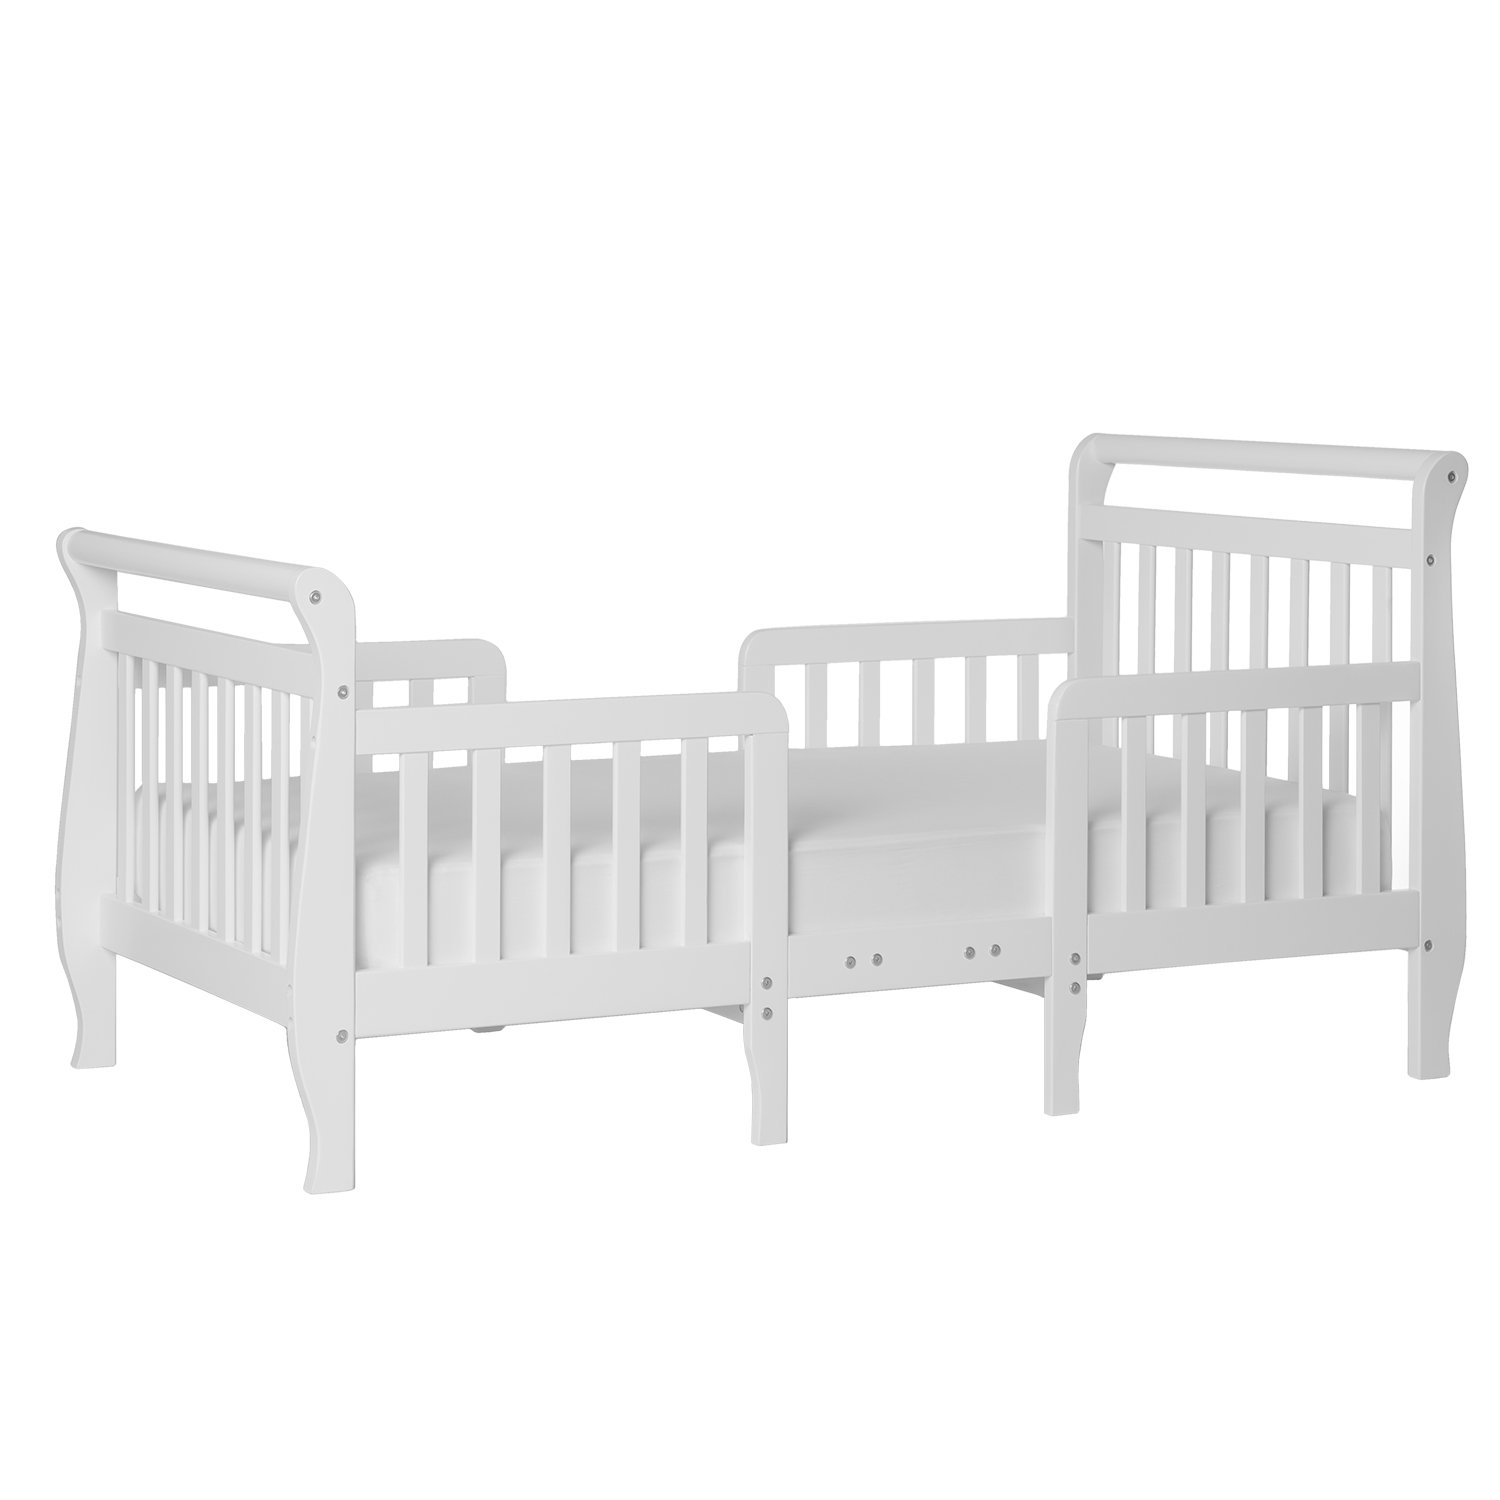 Dream On Me Emma 3 in 1 Convertible Toddler Bed, White by Dream On Me